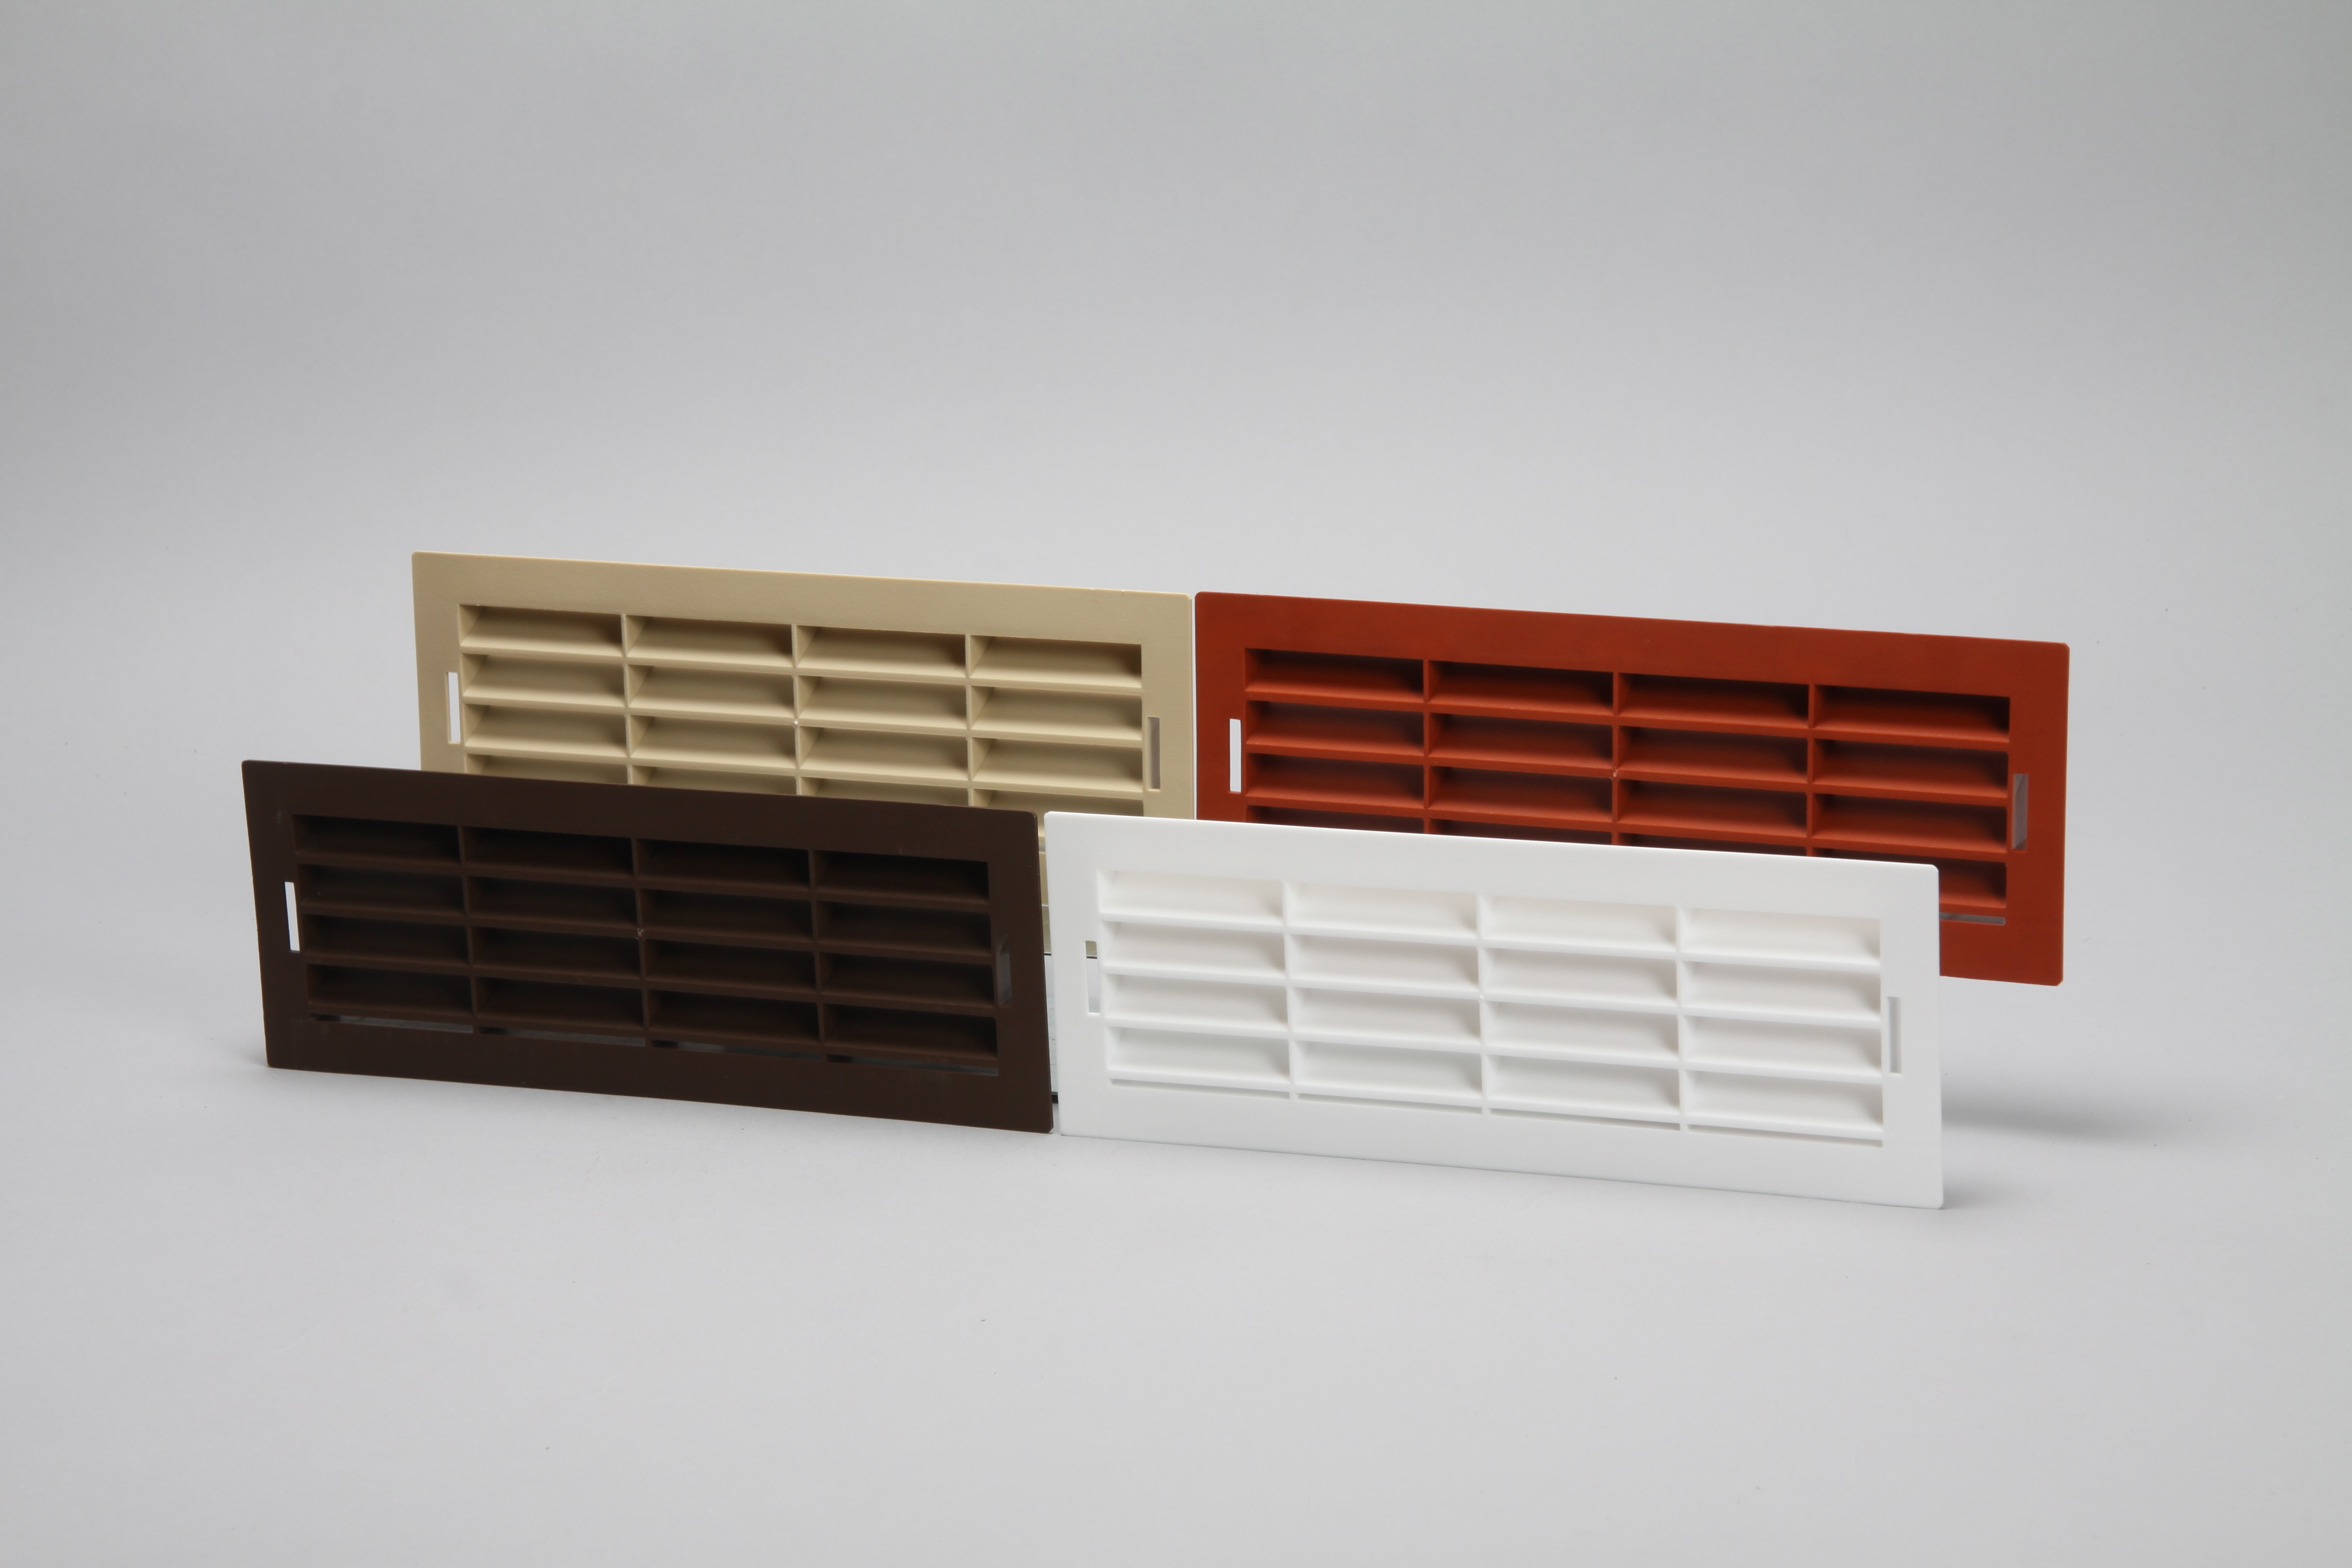 Air brick vent grille edged for flat channel ducting